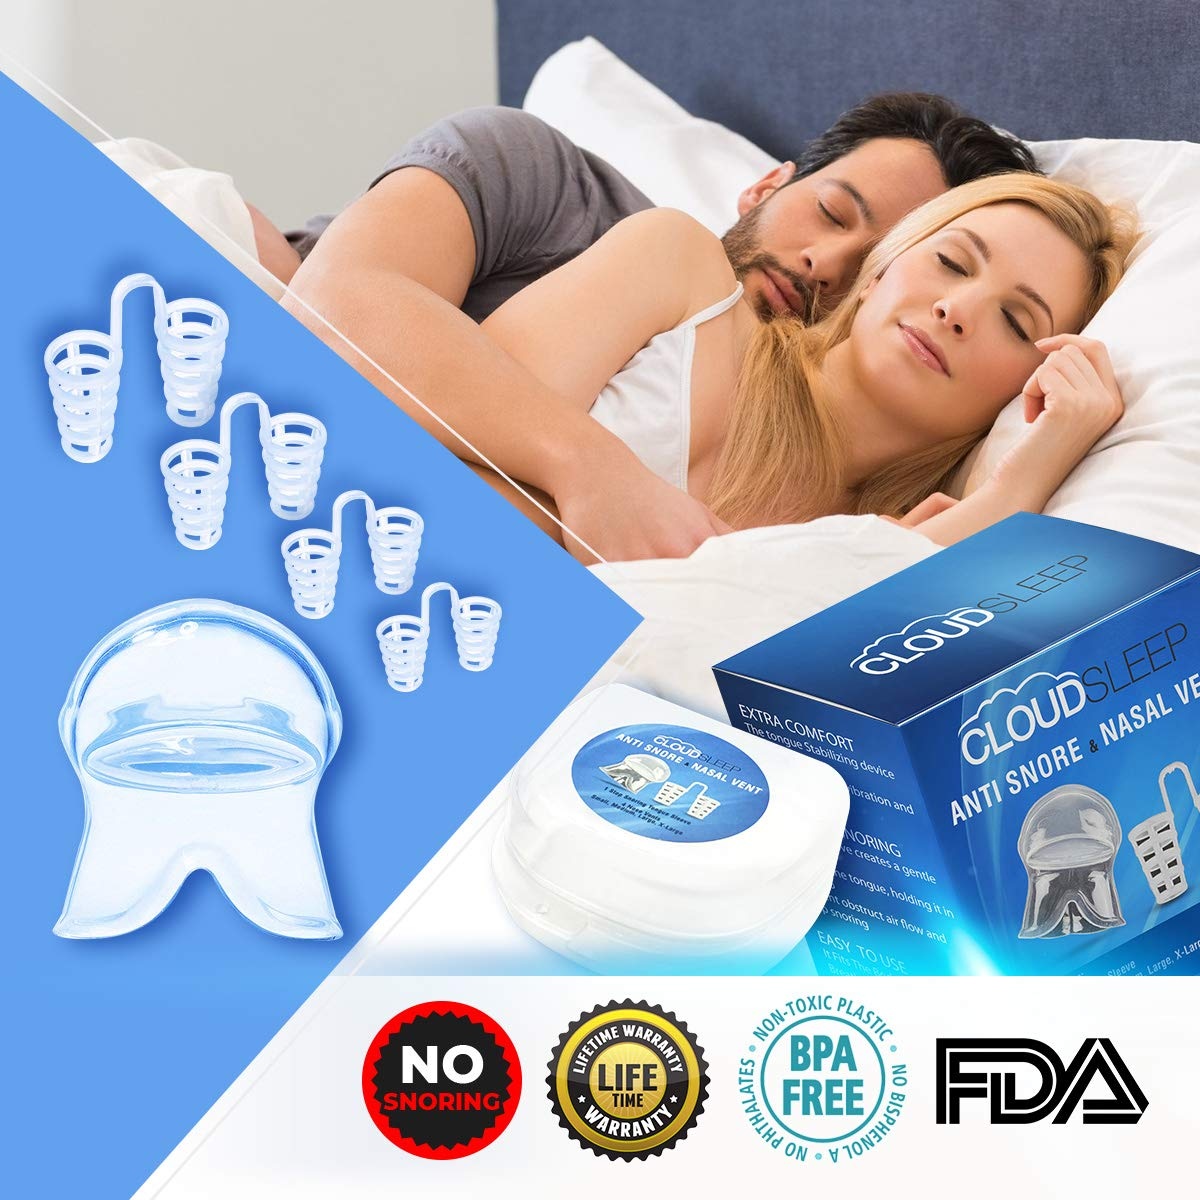 CLOUDSLEEP Anti Snoring Nose Vents Kit: 4 Pairs of Nasal Dilators in 4 Sizes + Anti Snore Mouth Guard Bundle| Easy to Use Silicone Snore Stopper Kit| Stop Snoring Solution Snoring Tongue Retainer by CLOUDSLEEP (Image #1)